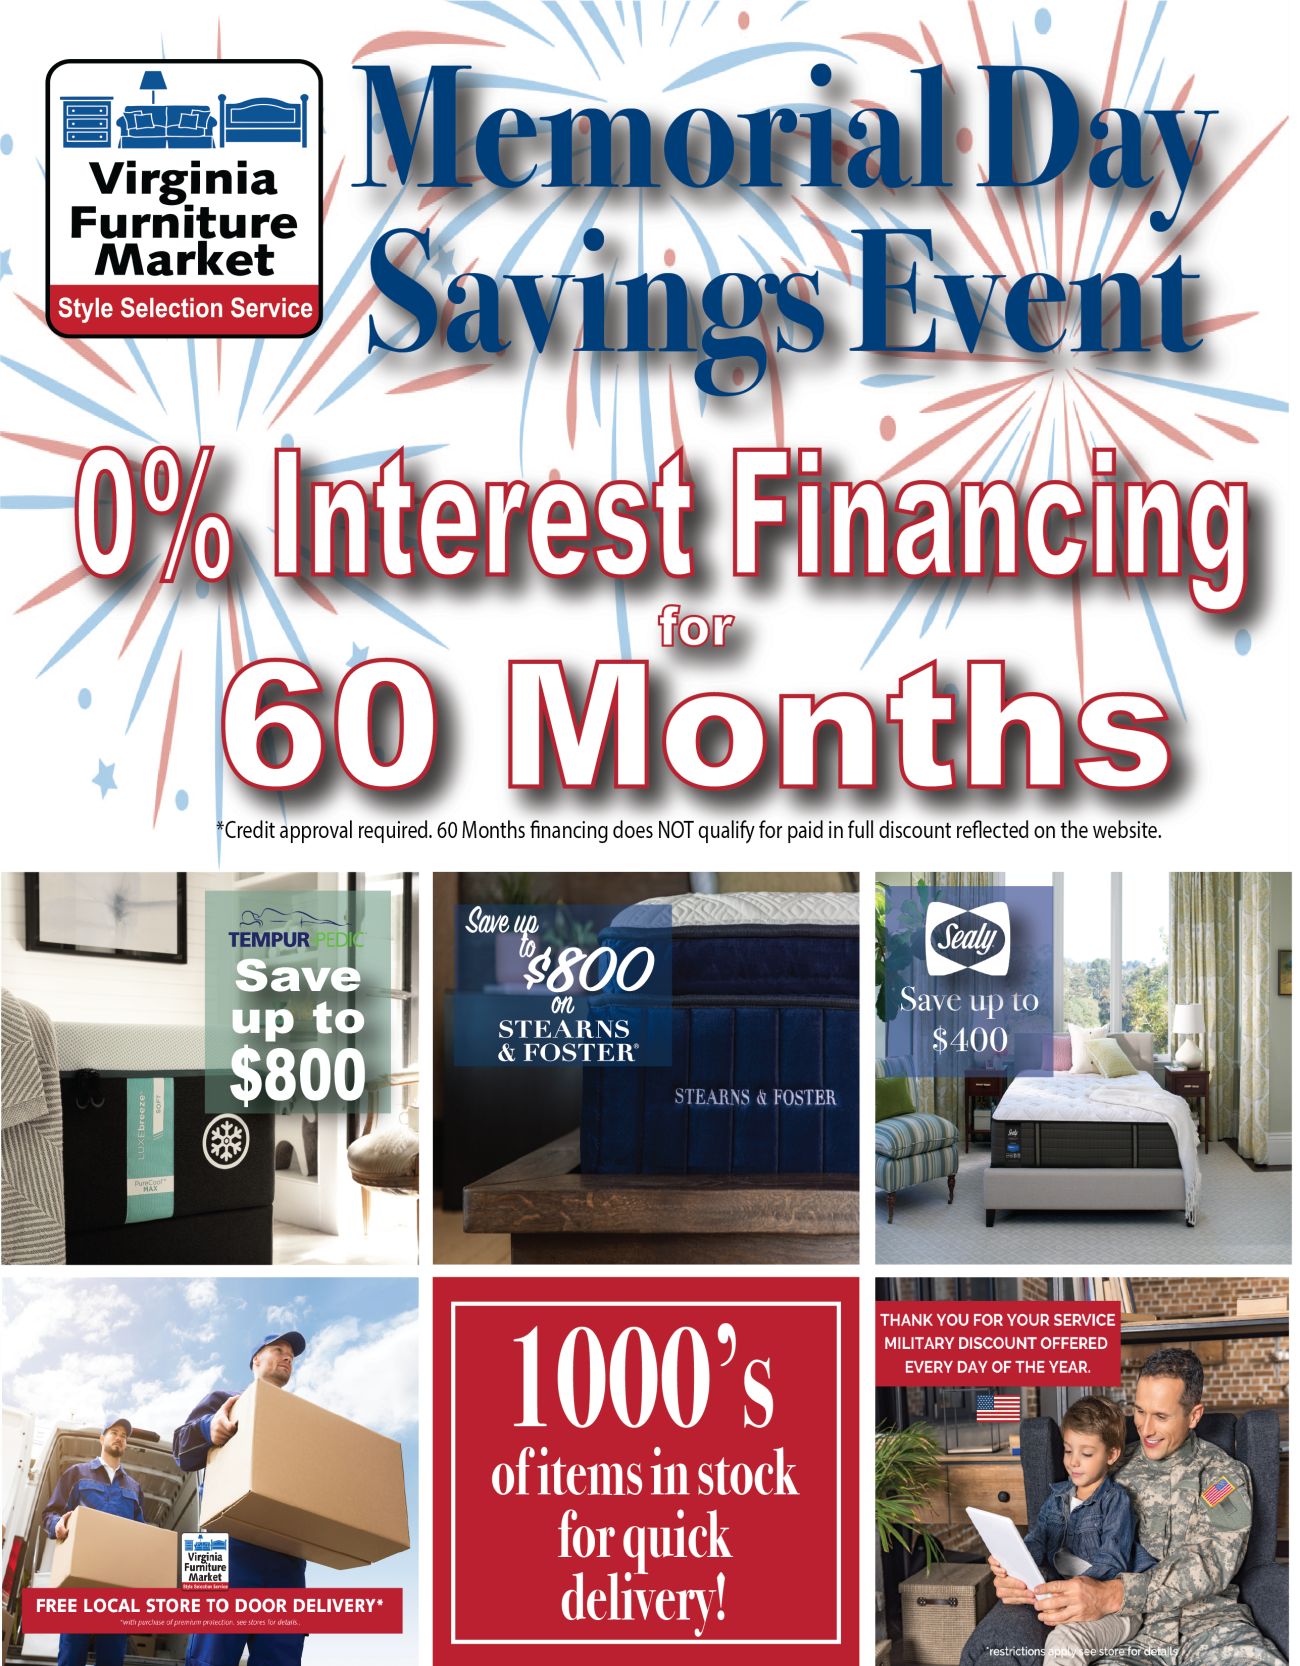 0% interest for 60 Months.  Cash discount reflected on website does NOT qualify for 60 months 0% interest.  Save up to $800 on the top brands in bedding including Stearns & Foster, Tempur-Pedic, and Sealy.  Free store to door delivery.  1000's of items in stock for quick delivery.